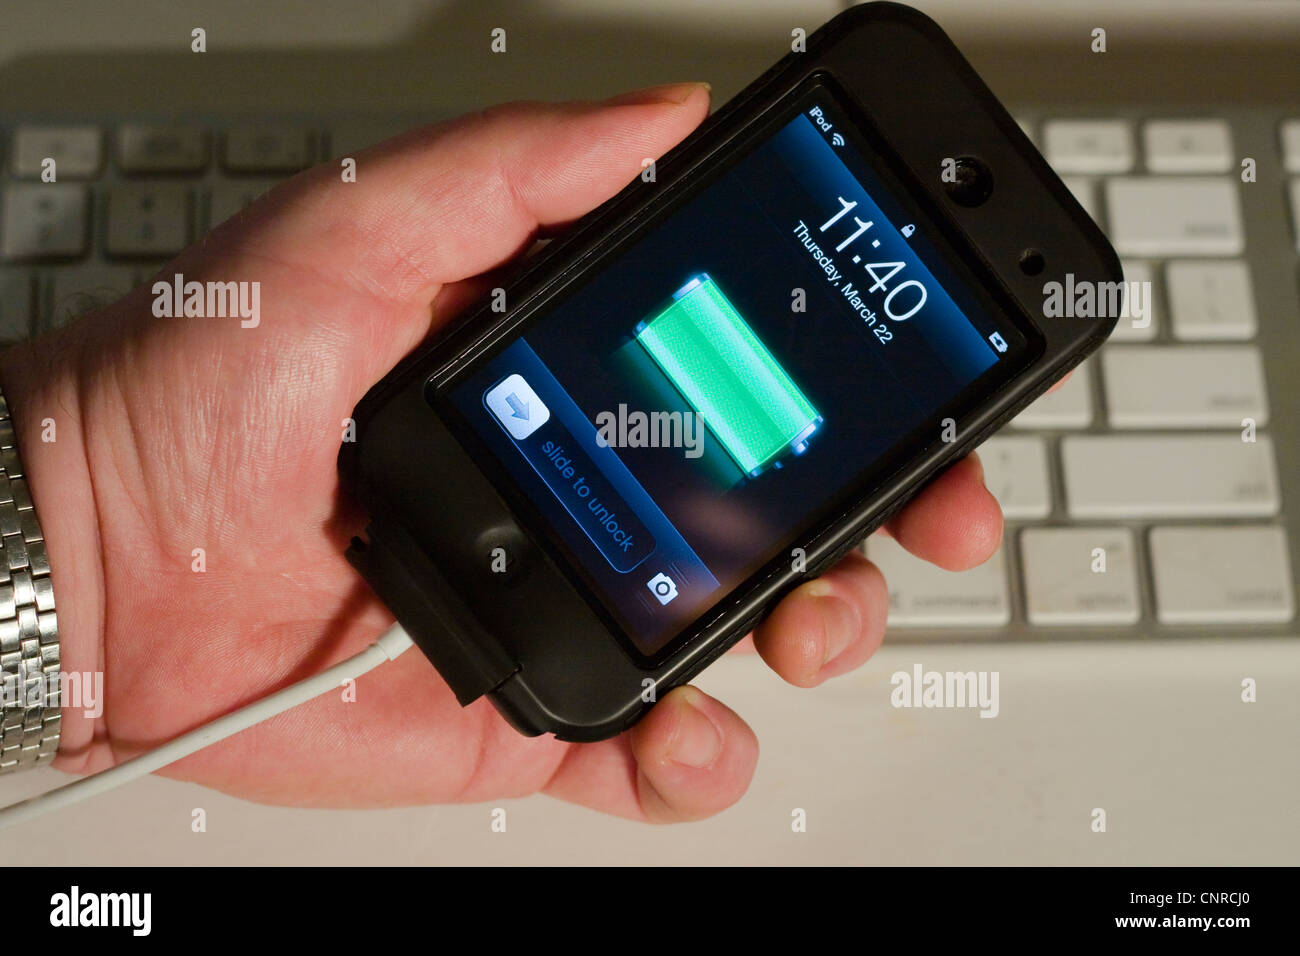 Man's hand holding an iPod Touch showing a fully charged